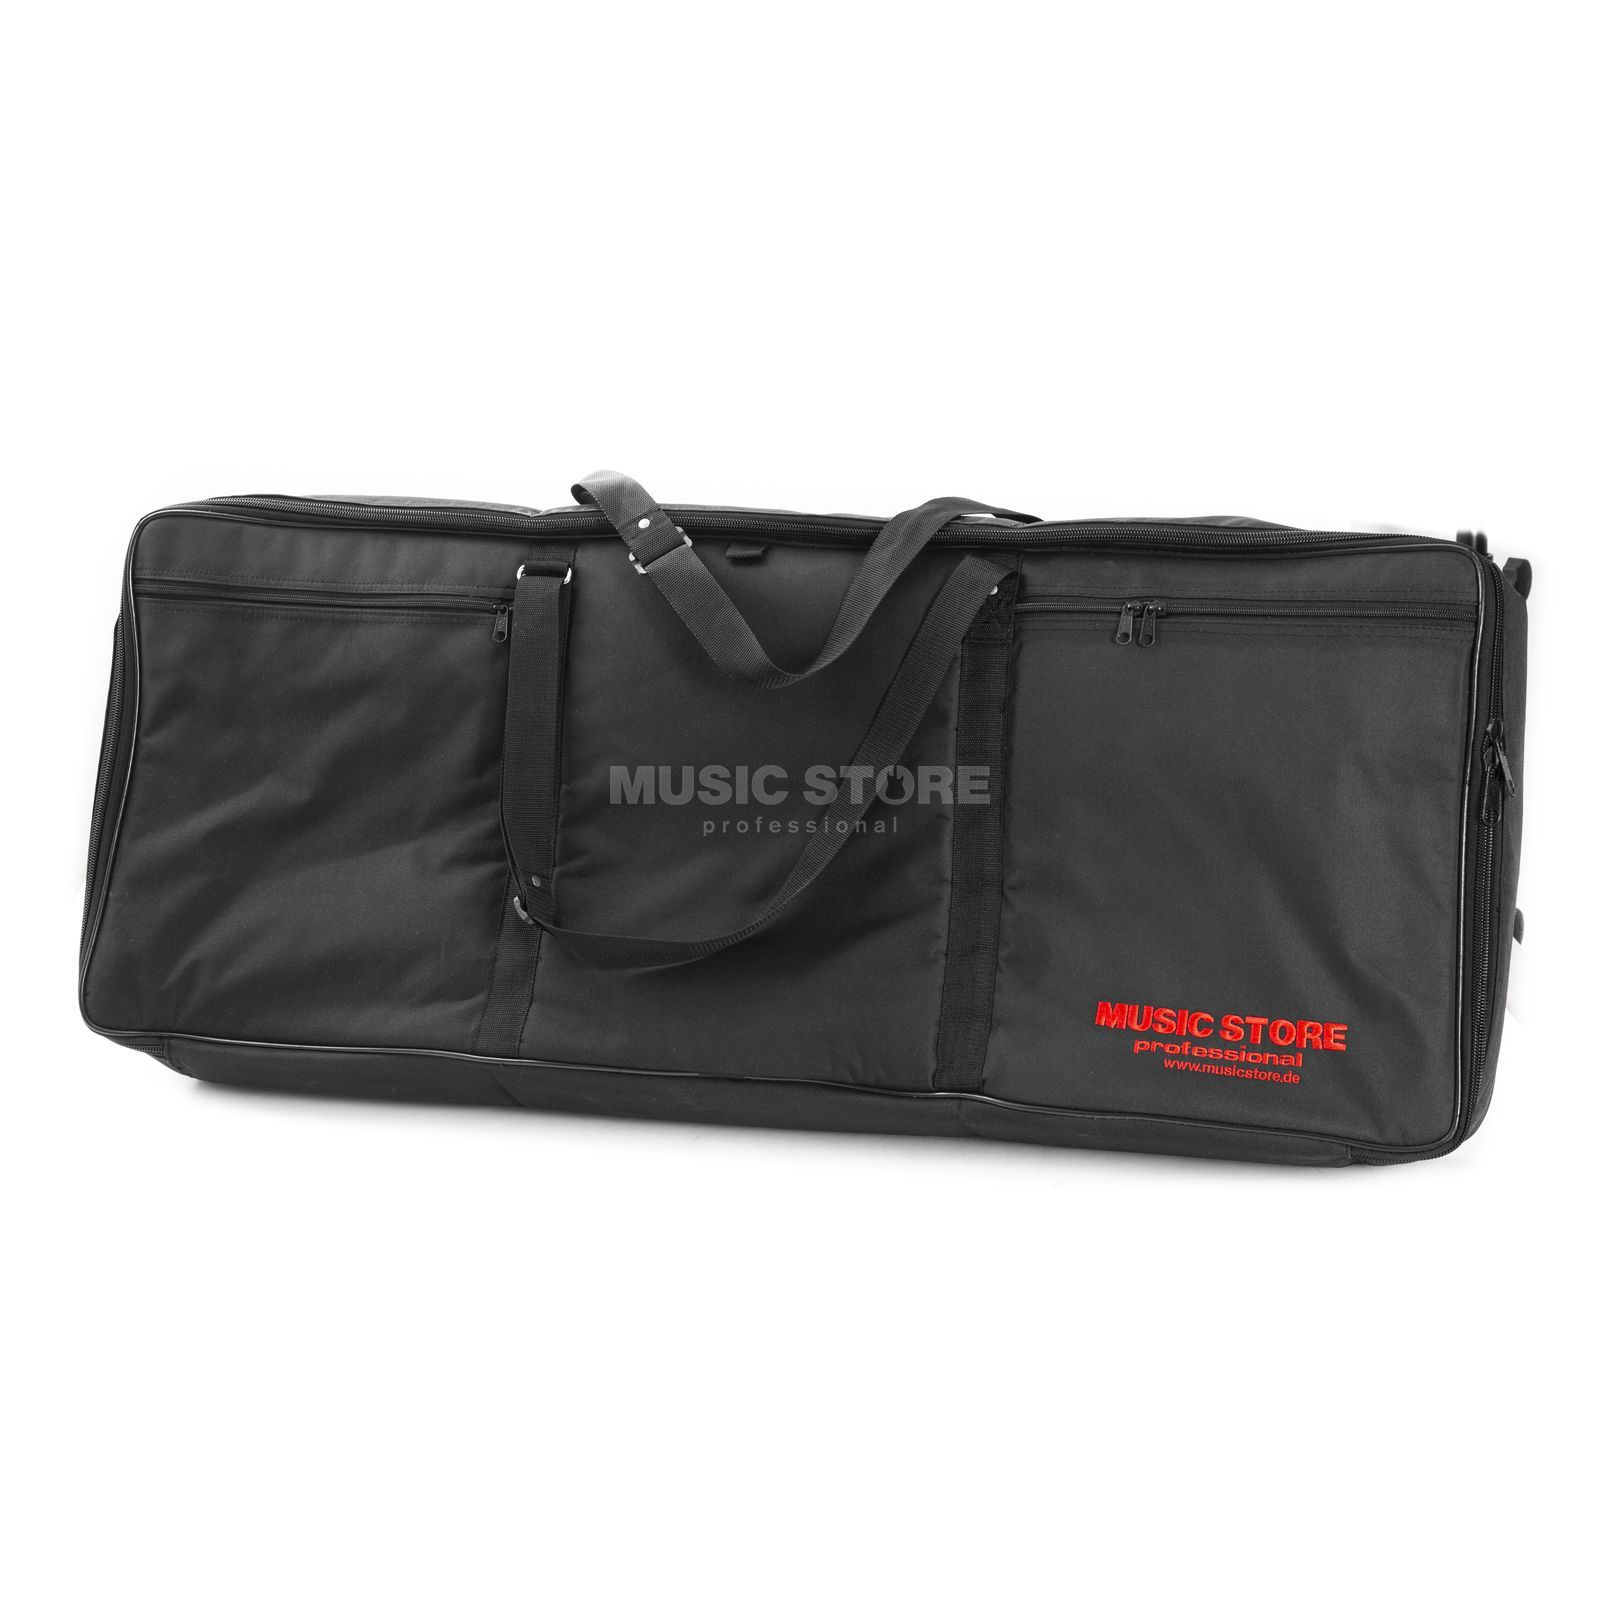 MUSIC STORE KC-23 II Keyboard Bag 108 x 45 x 18cm Product Image